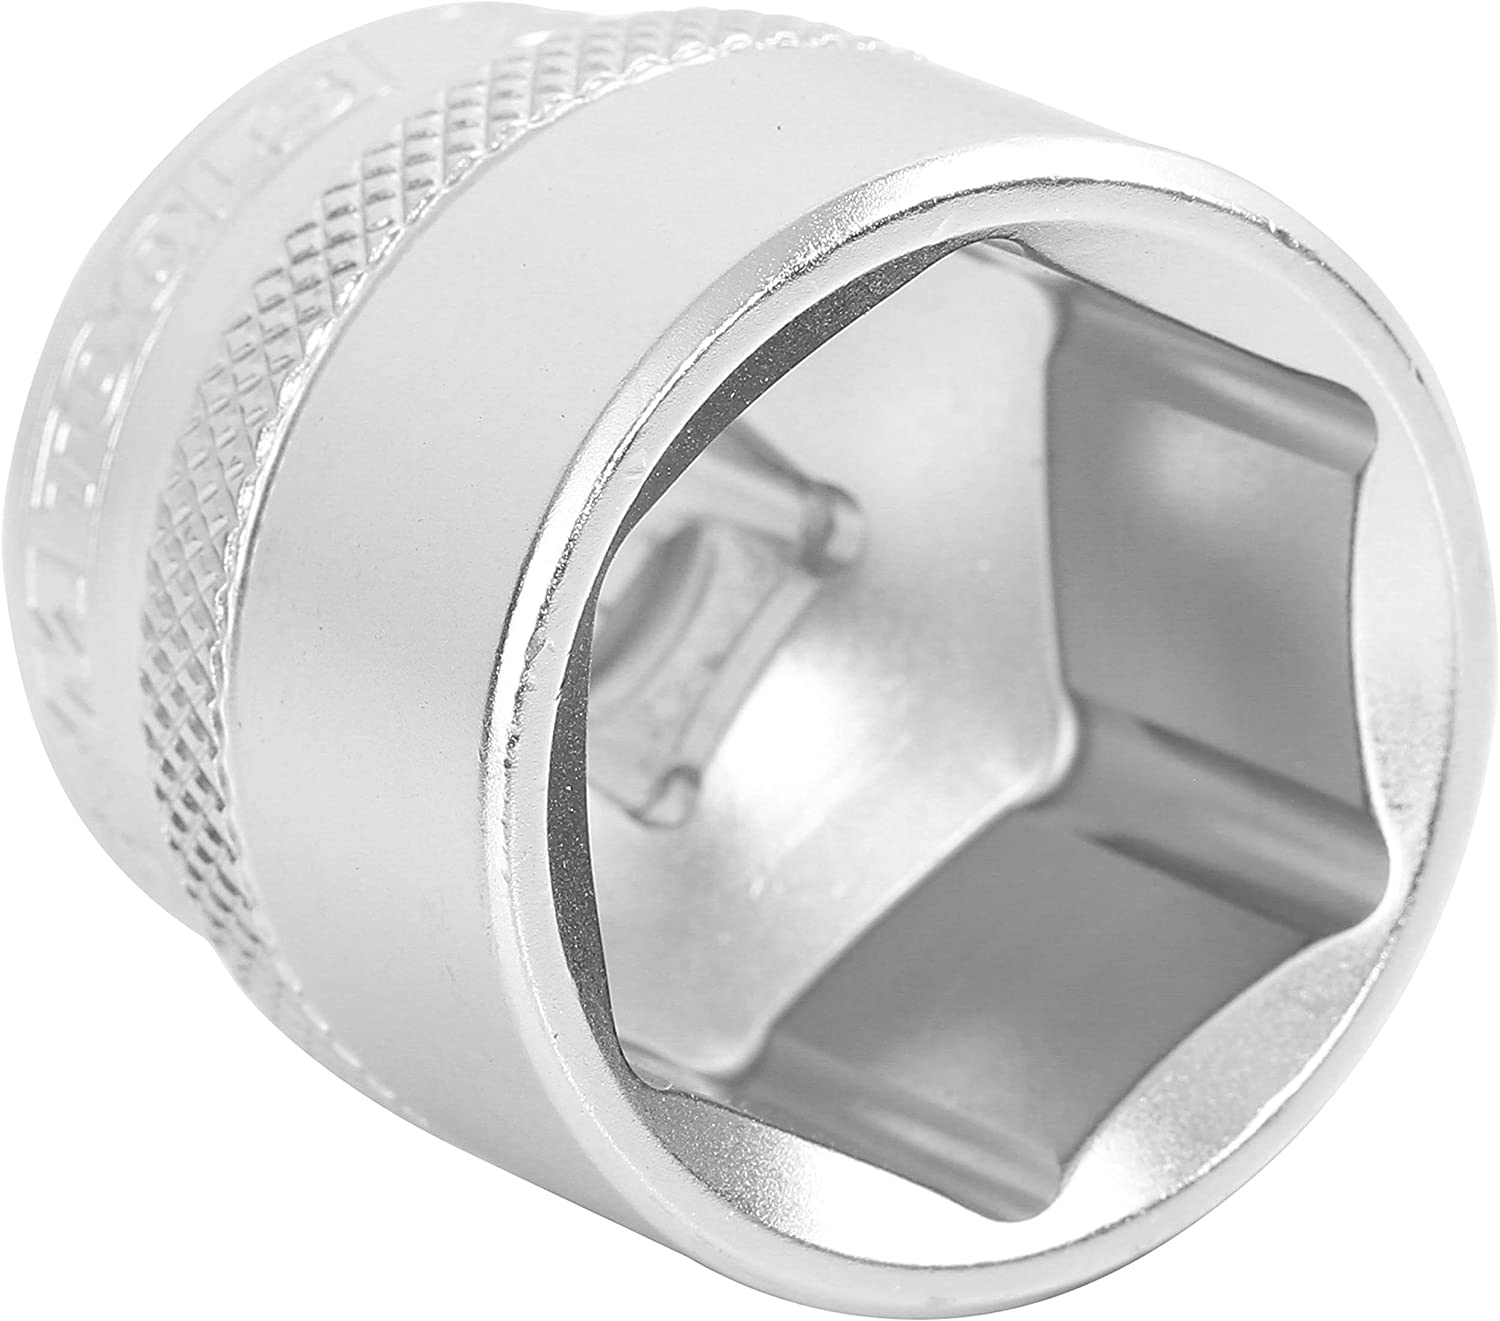 OEMTOOLS 22297 23 mm Metric Socket